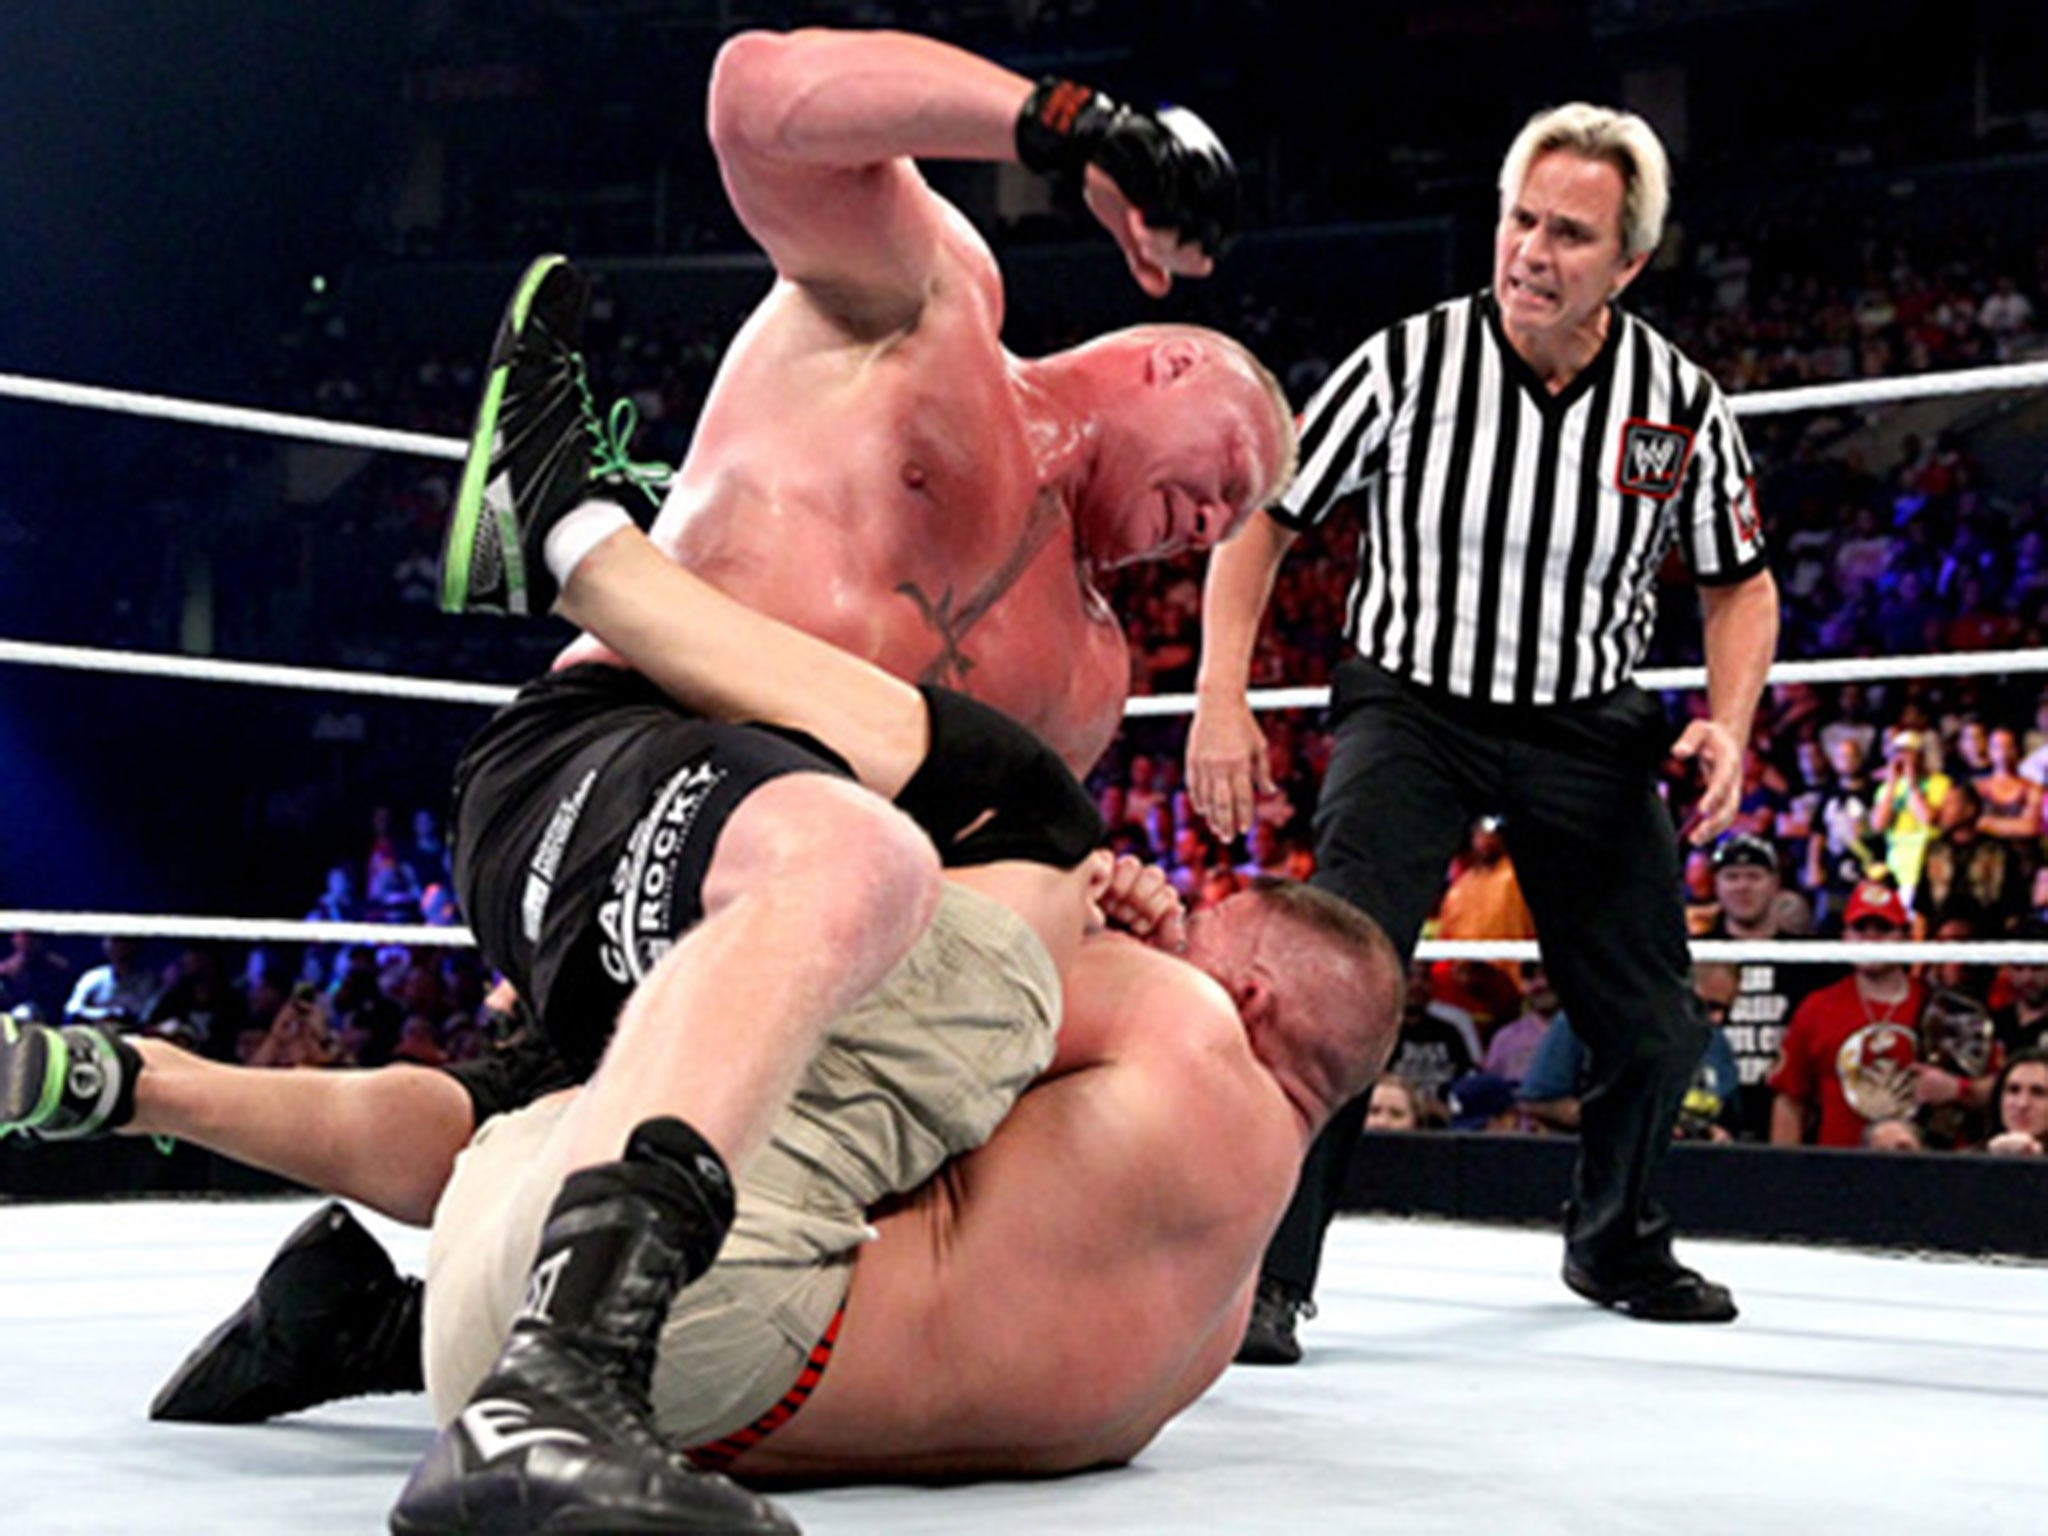 Wwe summerslam 2014 how twitter reacted to john cena vs brock lesnar the independent